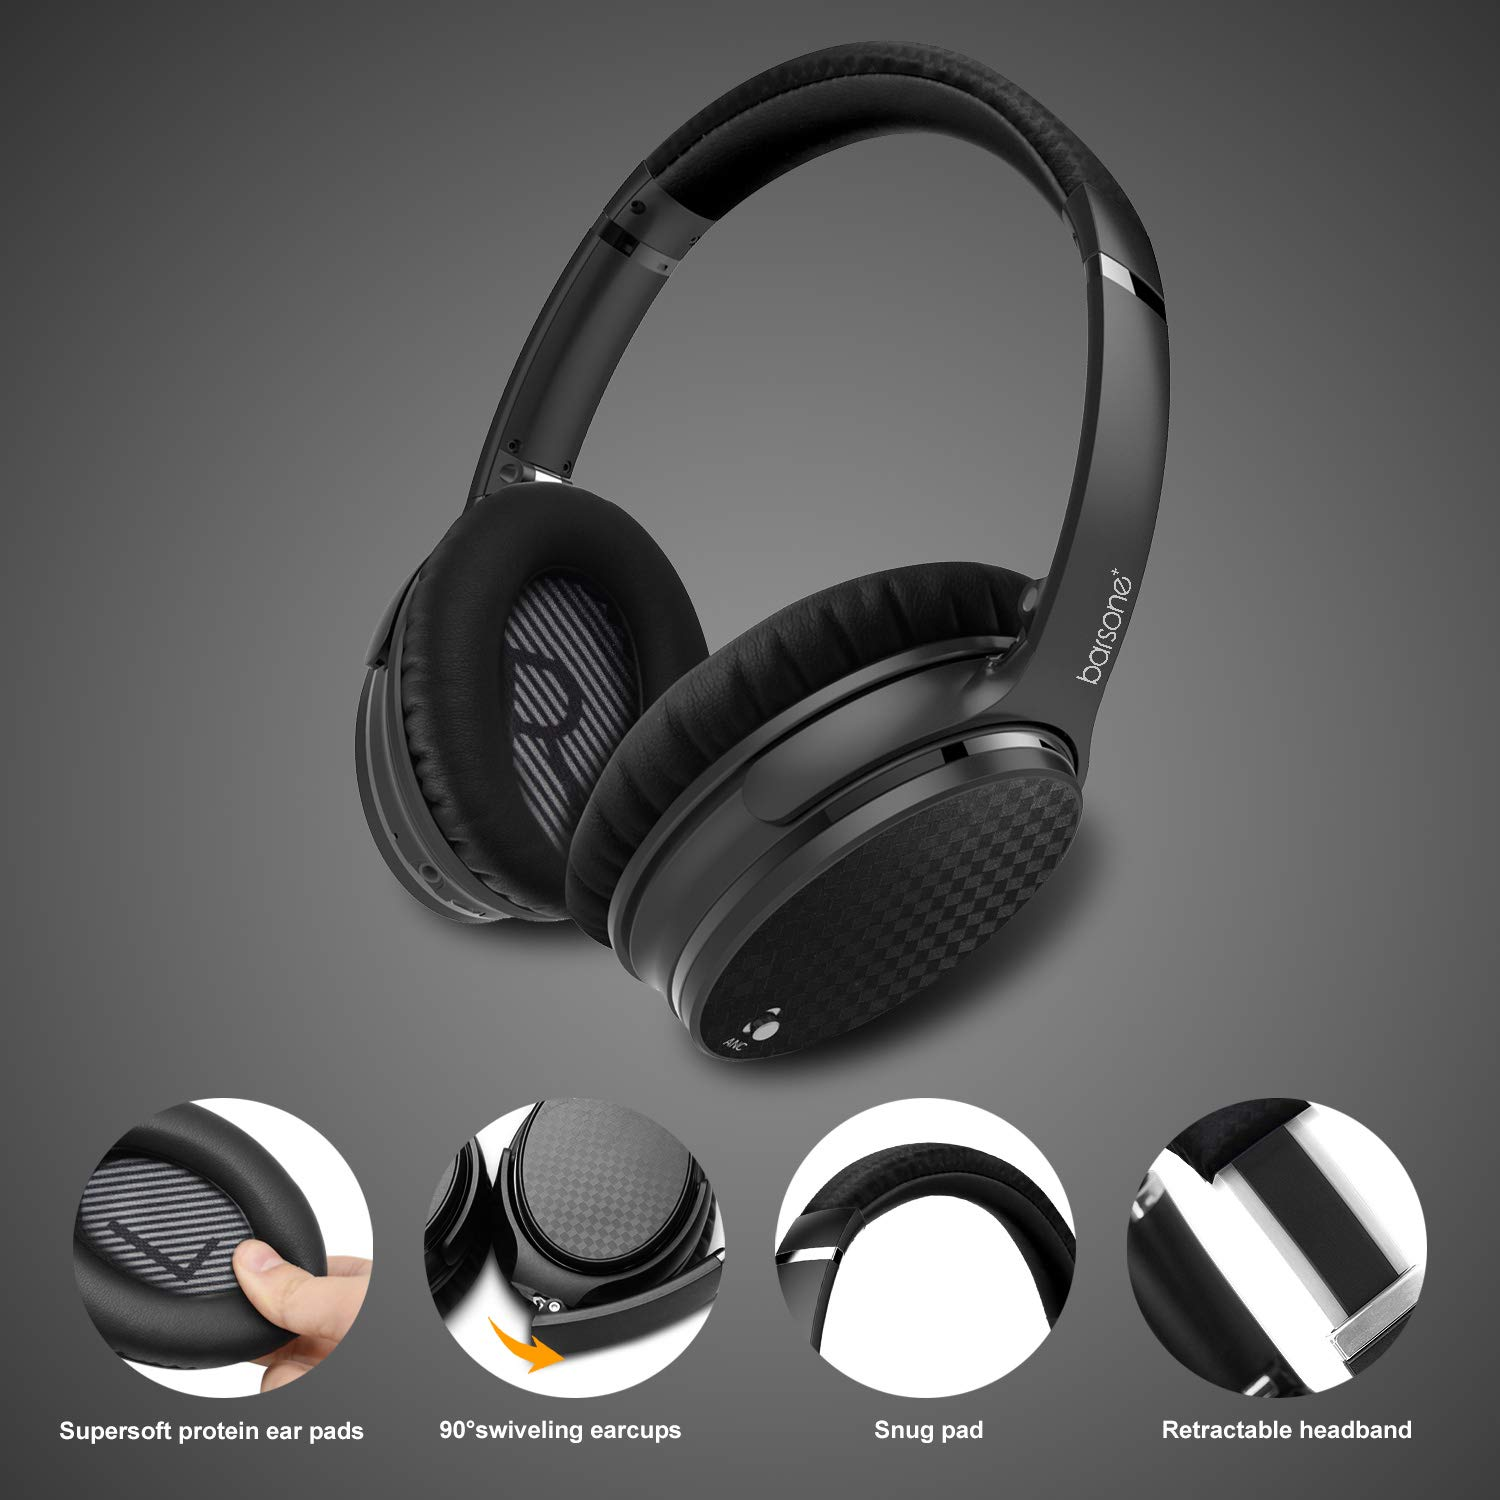 Active Noise Cancelling Headphones Bluetooth, barsone ANC Over Ear Hi-Fi Stereo Wired and Wireless Headphones with Case (Black)